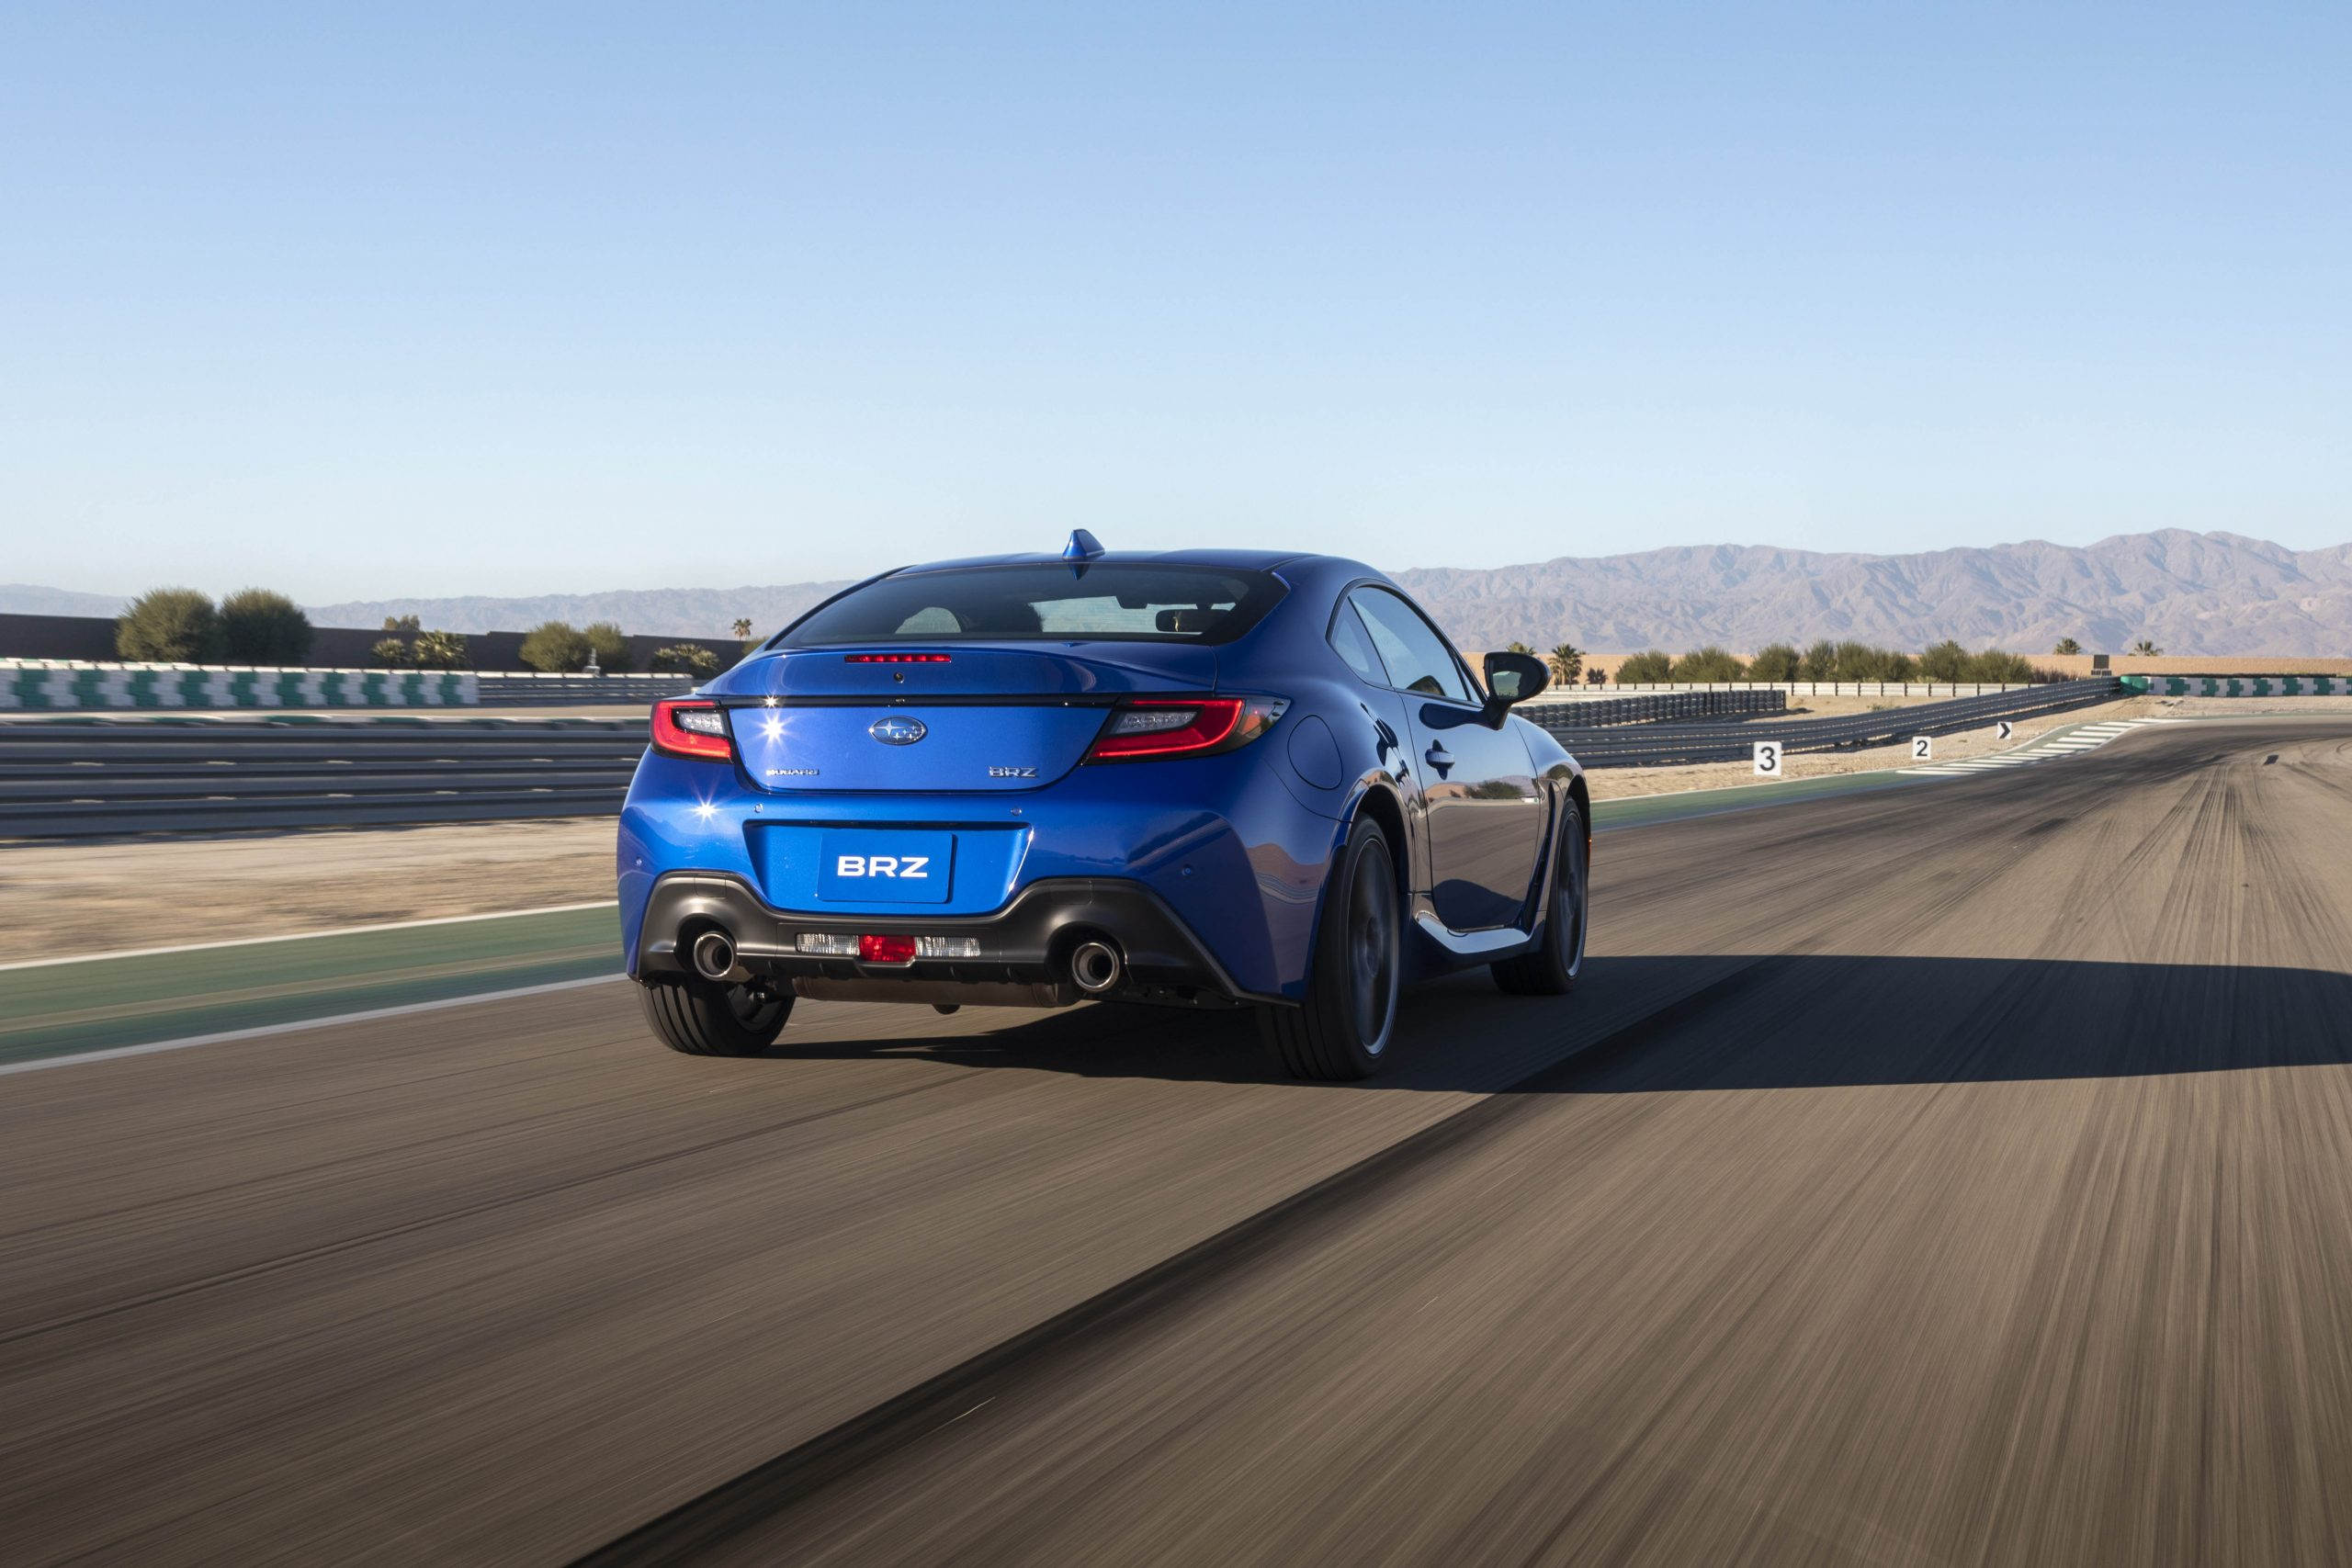 New 2022 Subaru BRZ rear three-quarter track action